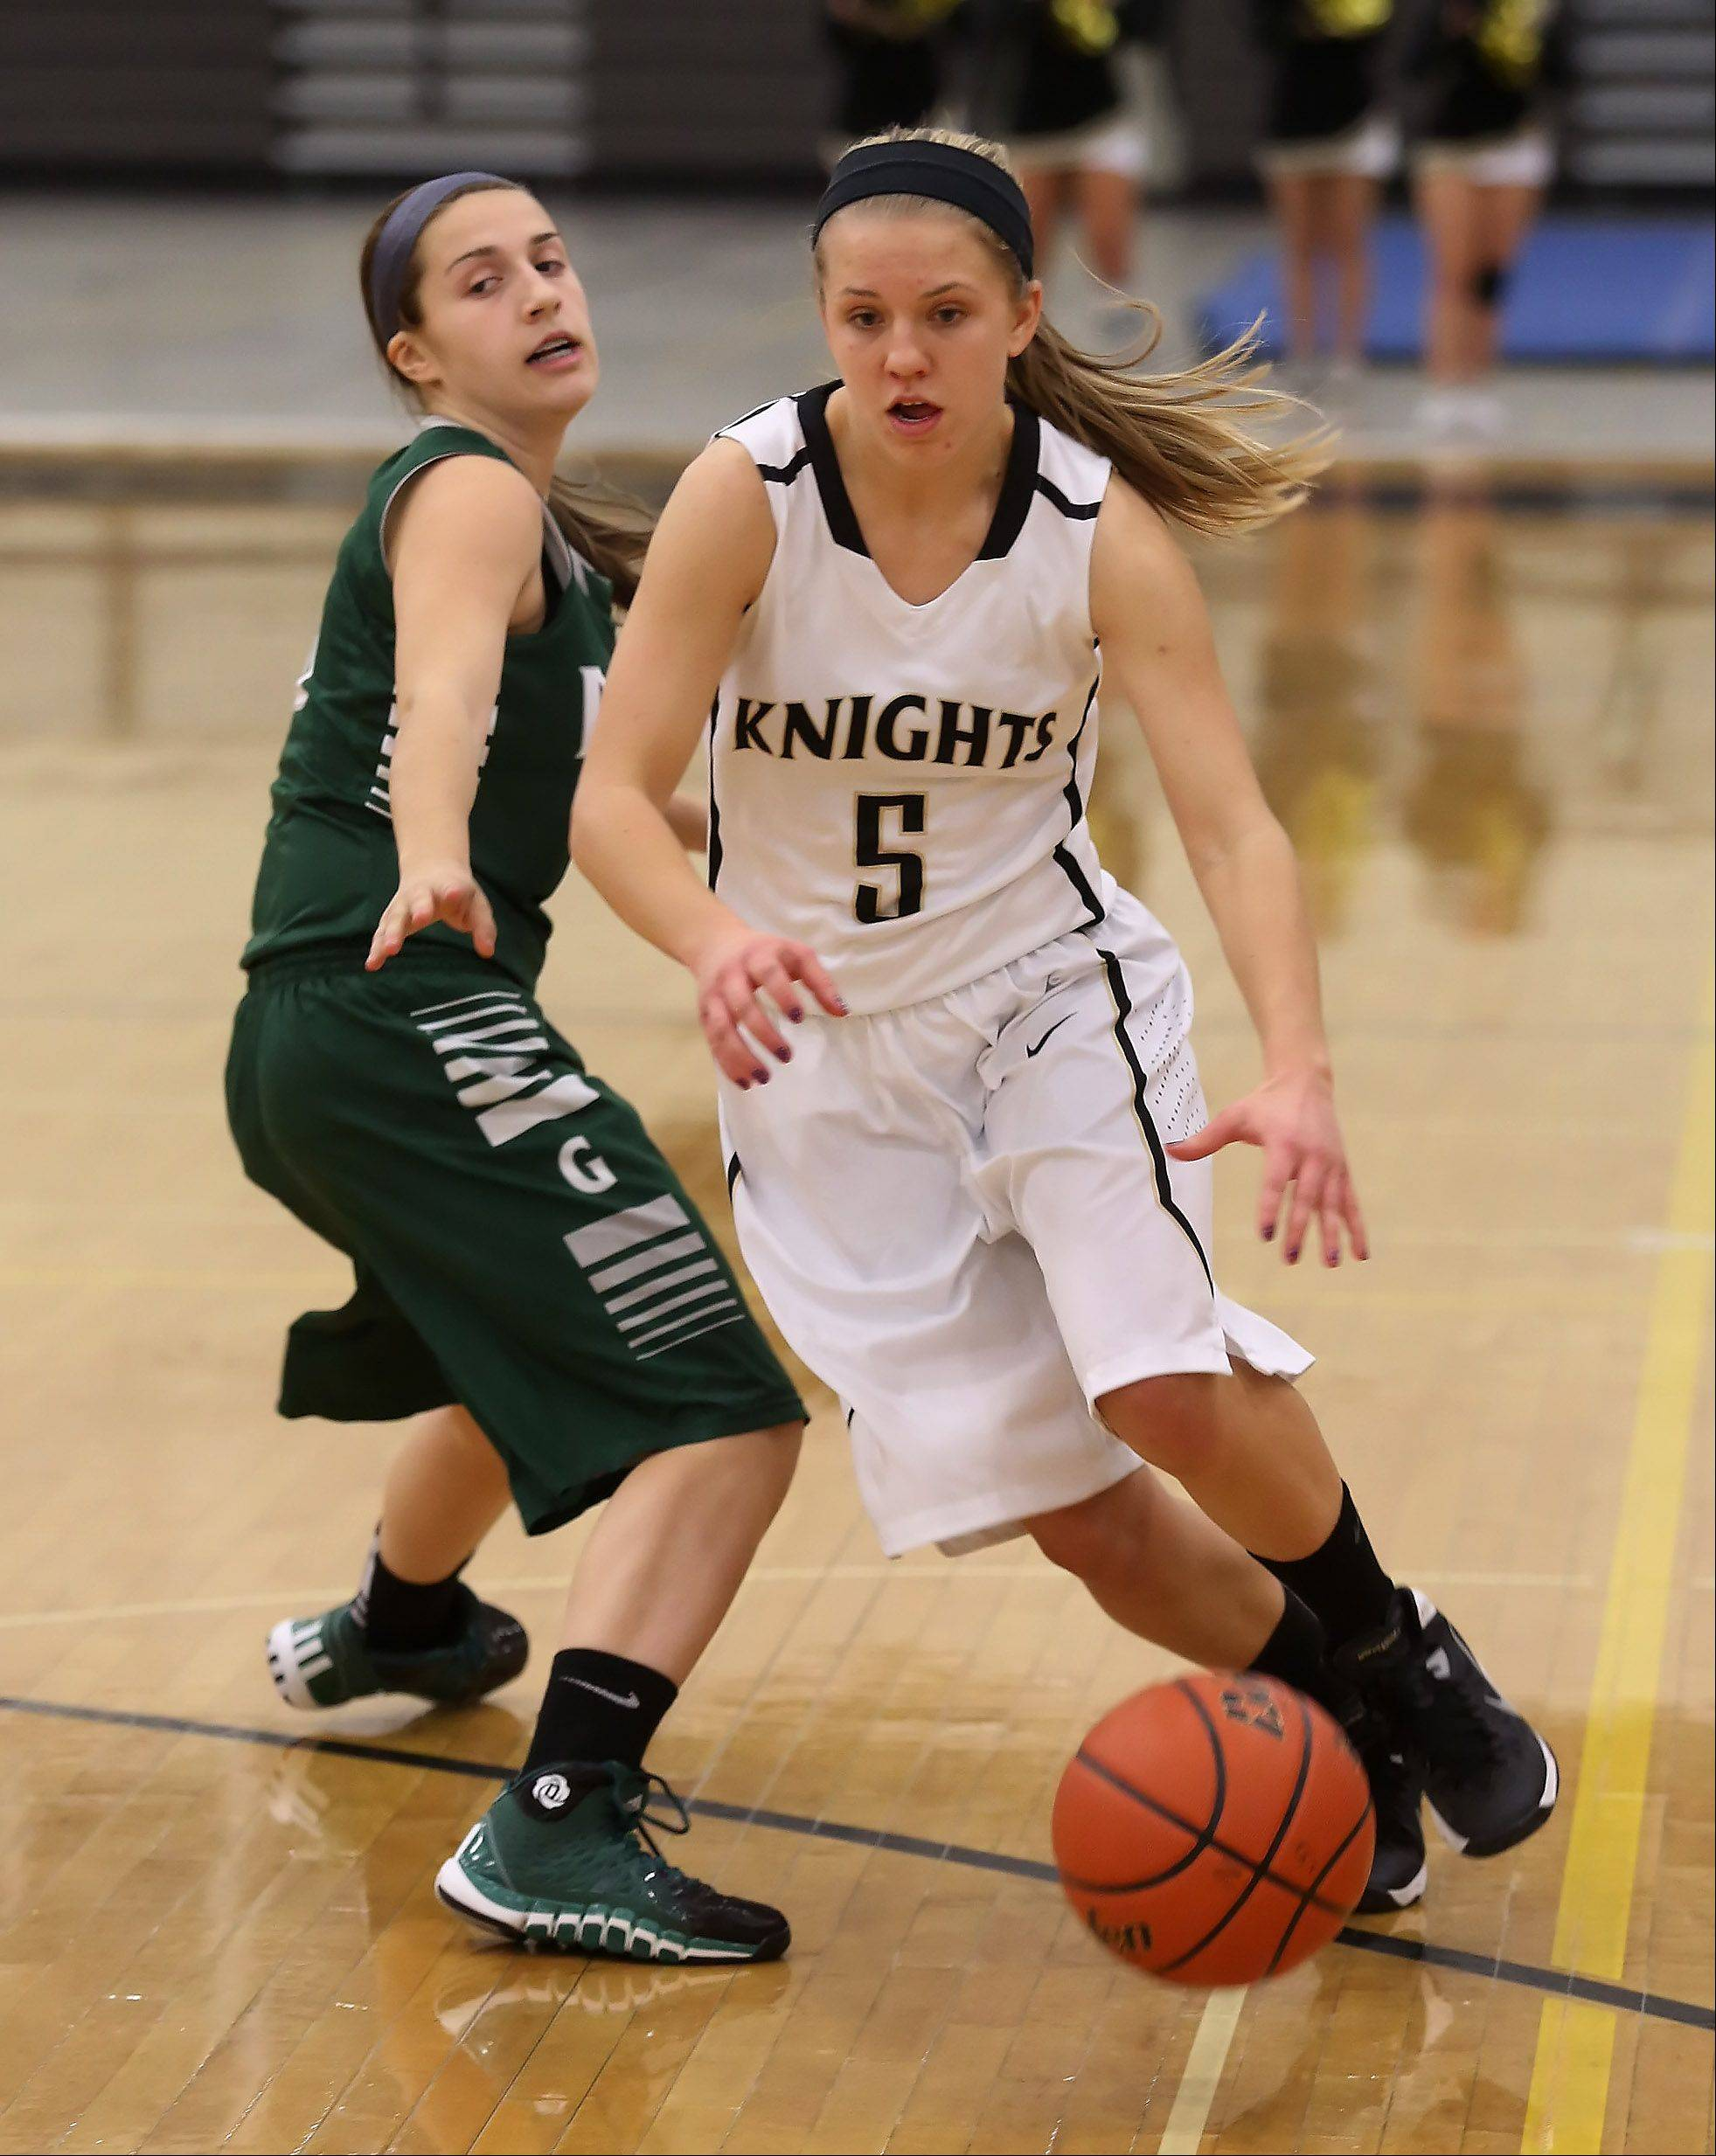 Grayslake North guard Kendall Detweiler drives around Grayslake Central guard Quinn Garbett on Thursday at Grayslake North.